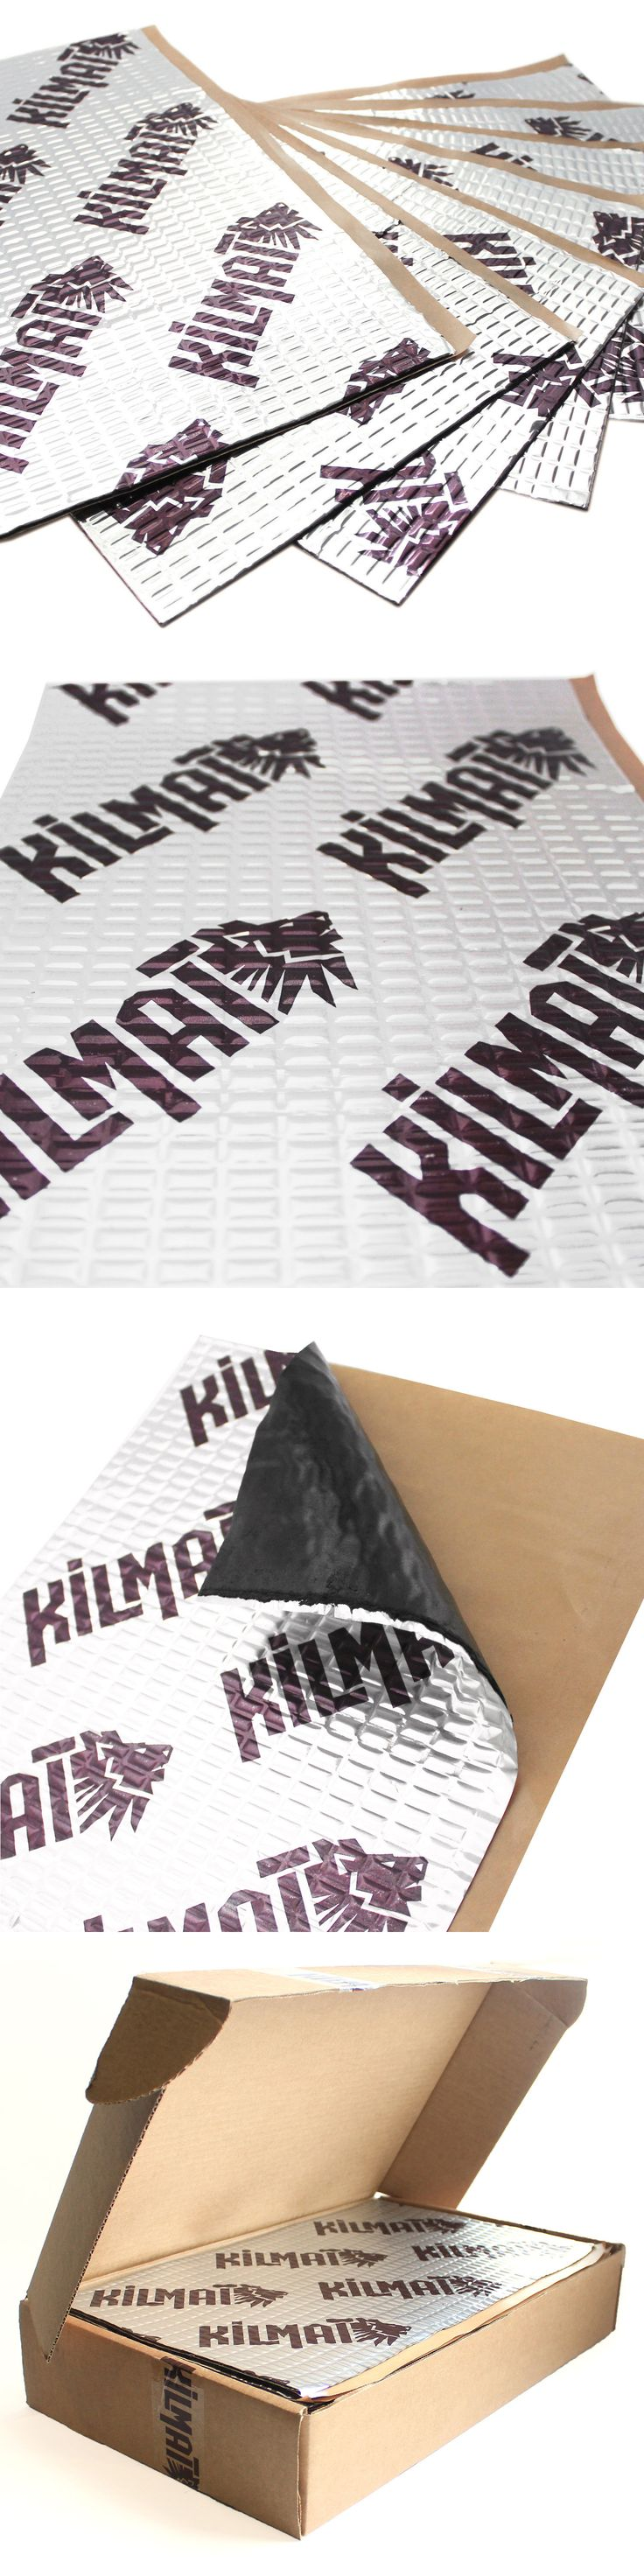 Other Car A V Installation: Kilmat 50 Mil 50 Sqft Car Sound Deadening Mat Deadener And Insulation Material -> BUY IT NOW ONLY: $62.4 on eBay!